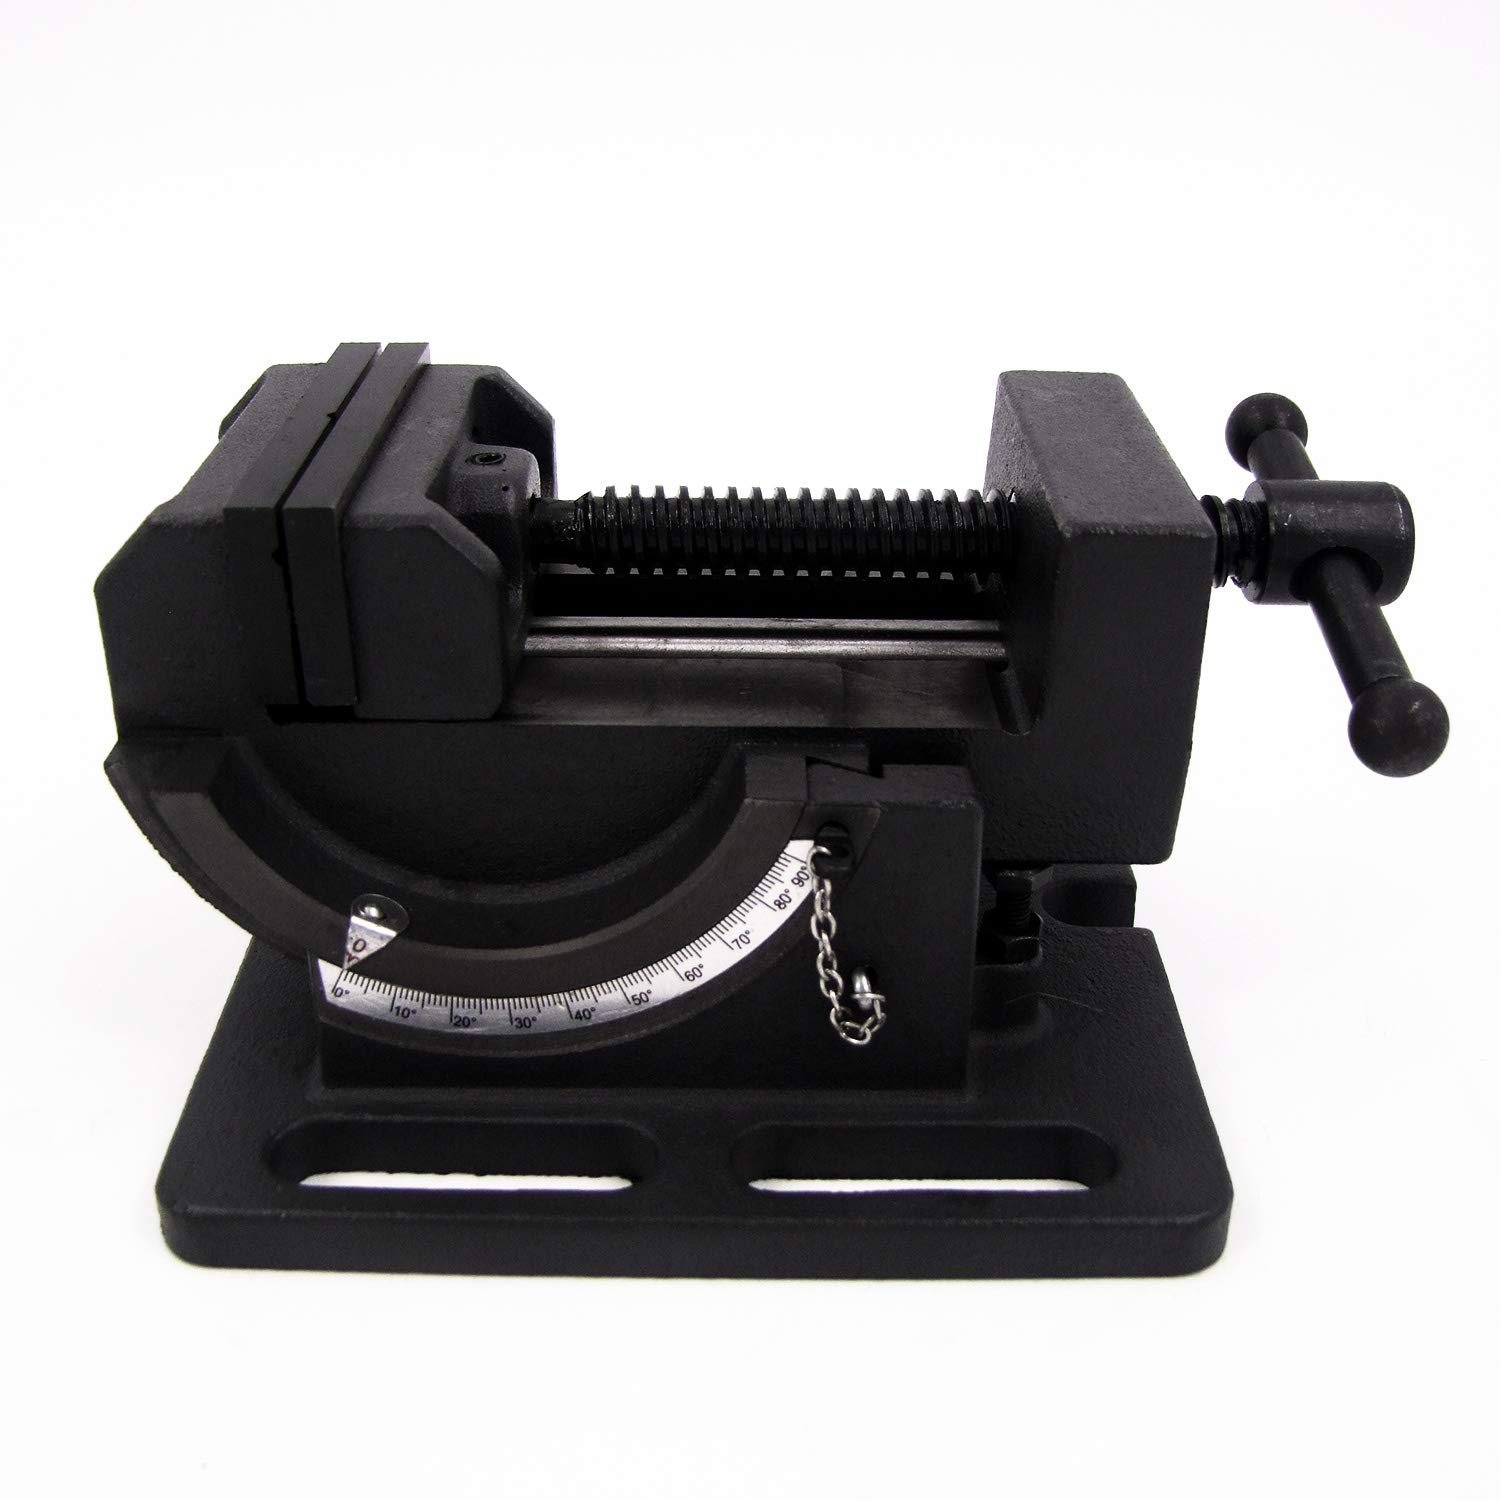 HFS (R) Cradle Style Angle Drill Press Vise (4'')